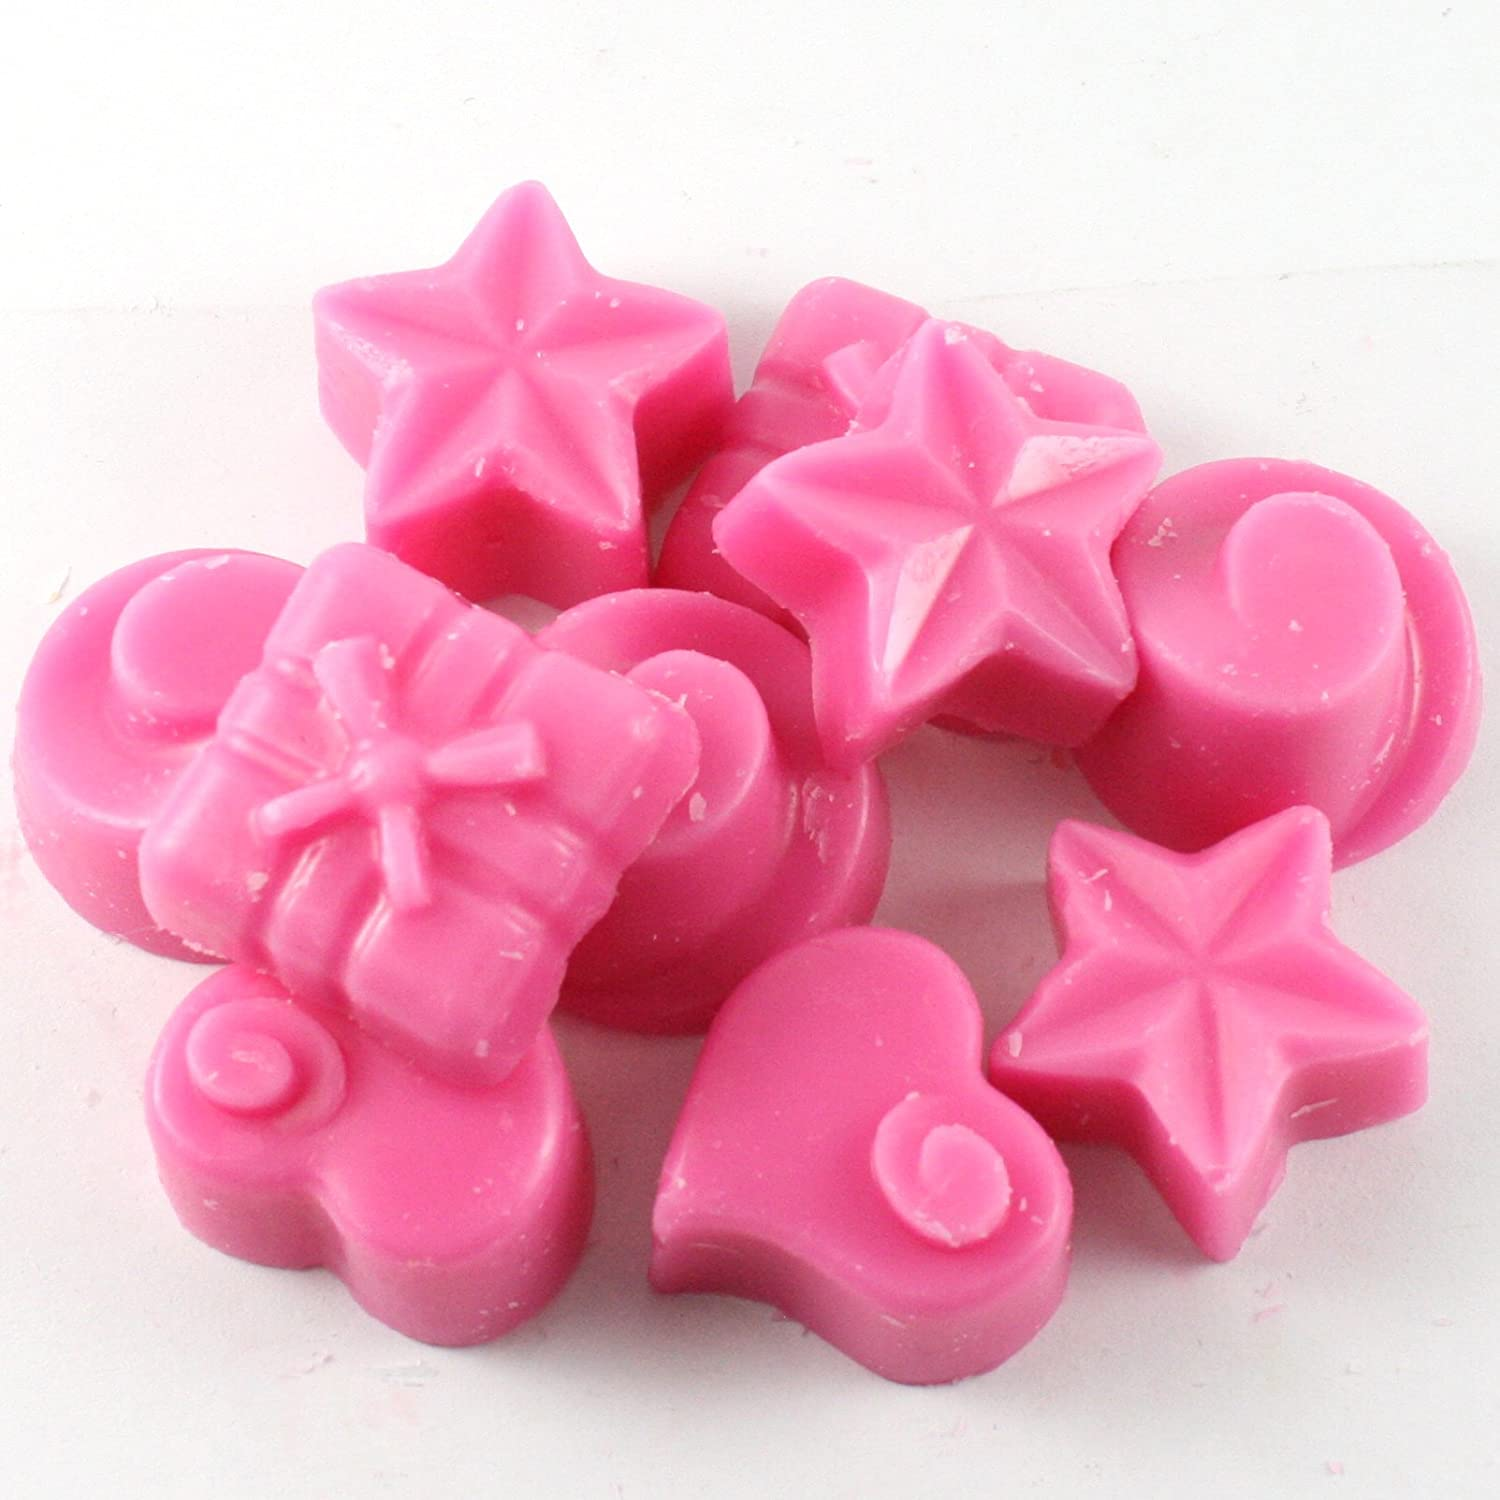 Joop Handmade Premium Quality Highly Scented Wax Melts for Oil Burners. 10 x 5g Melts in each pack